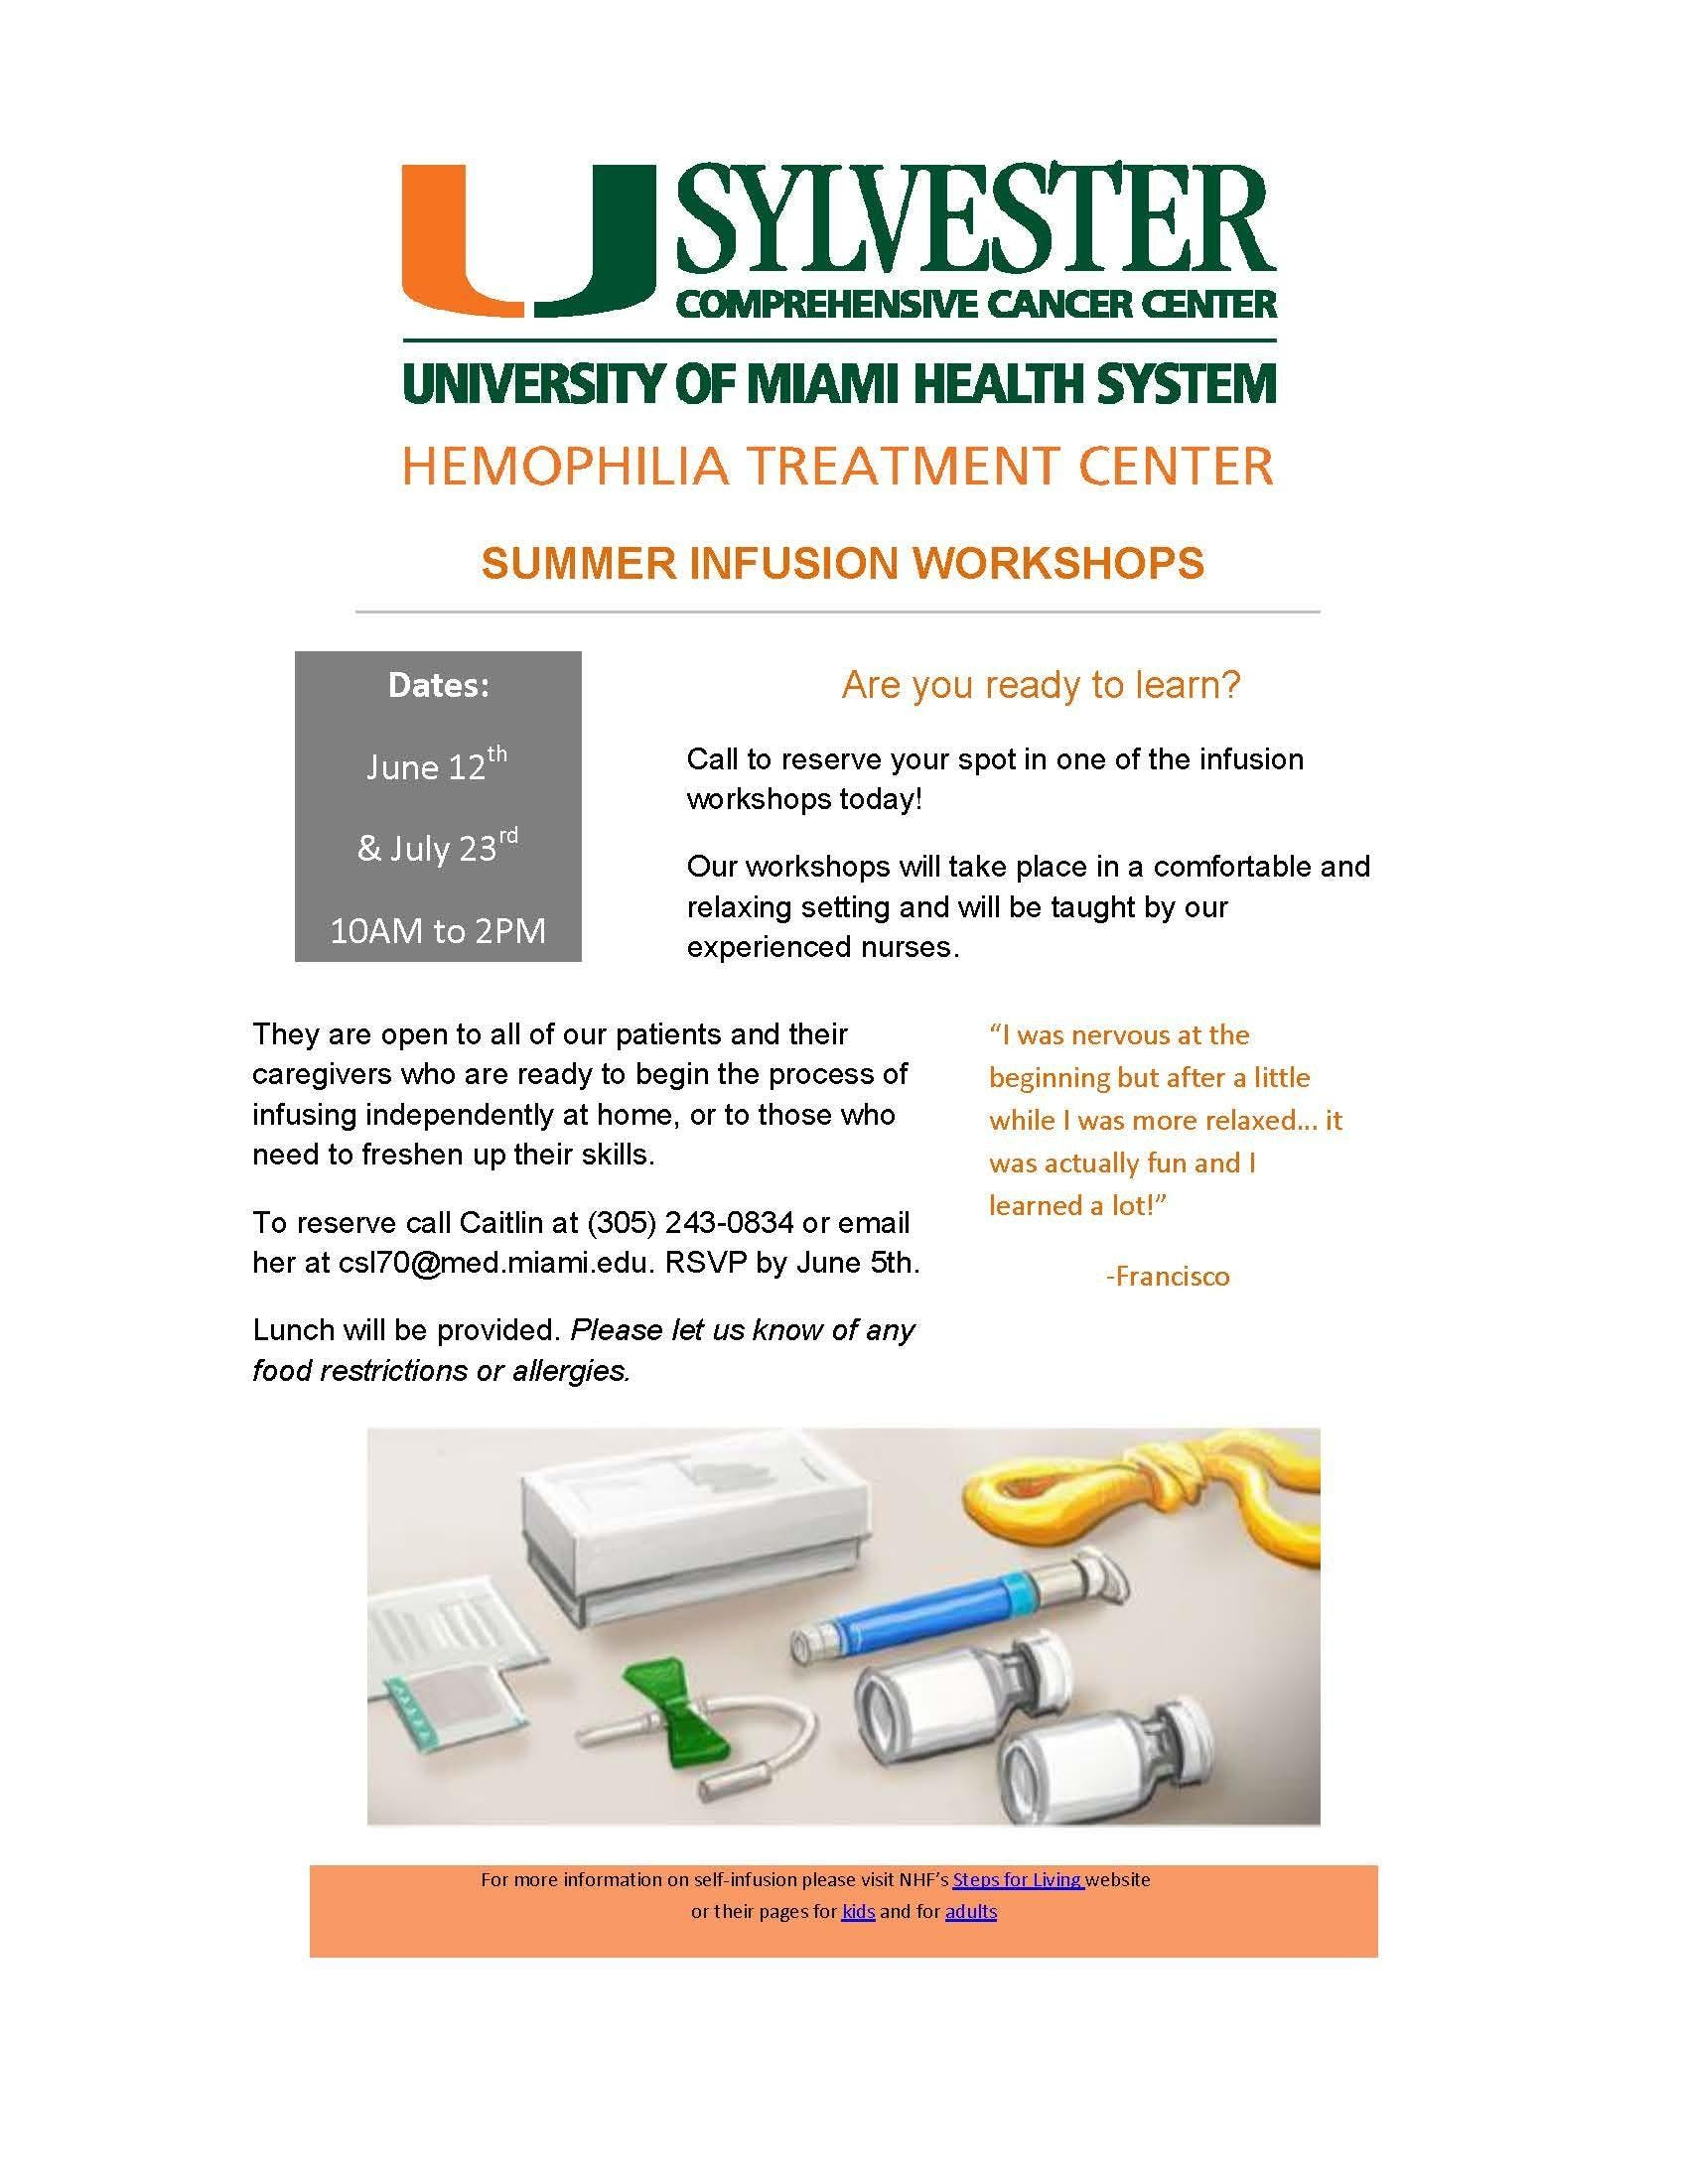 Summer Infusion Workshop 2018 #2: University